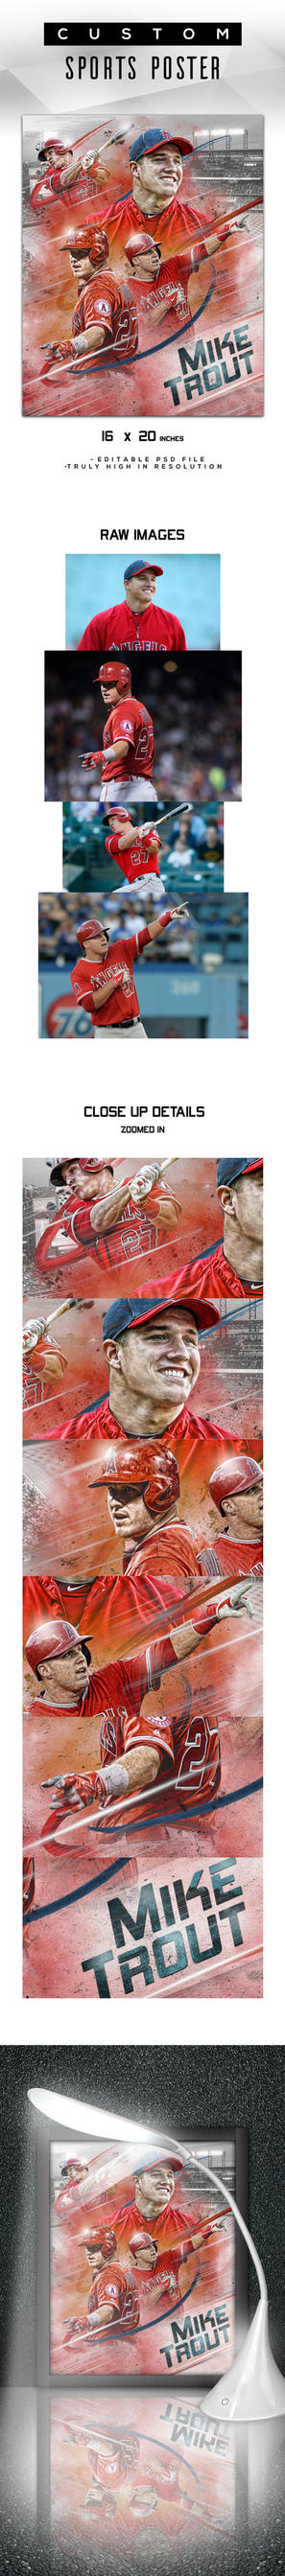 Mike Trout Poster by tmaclabi